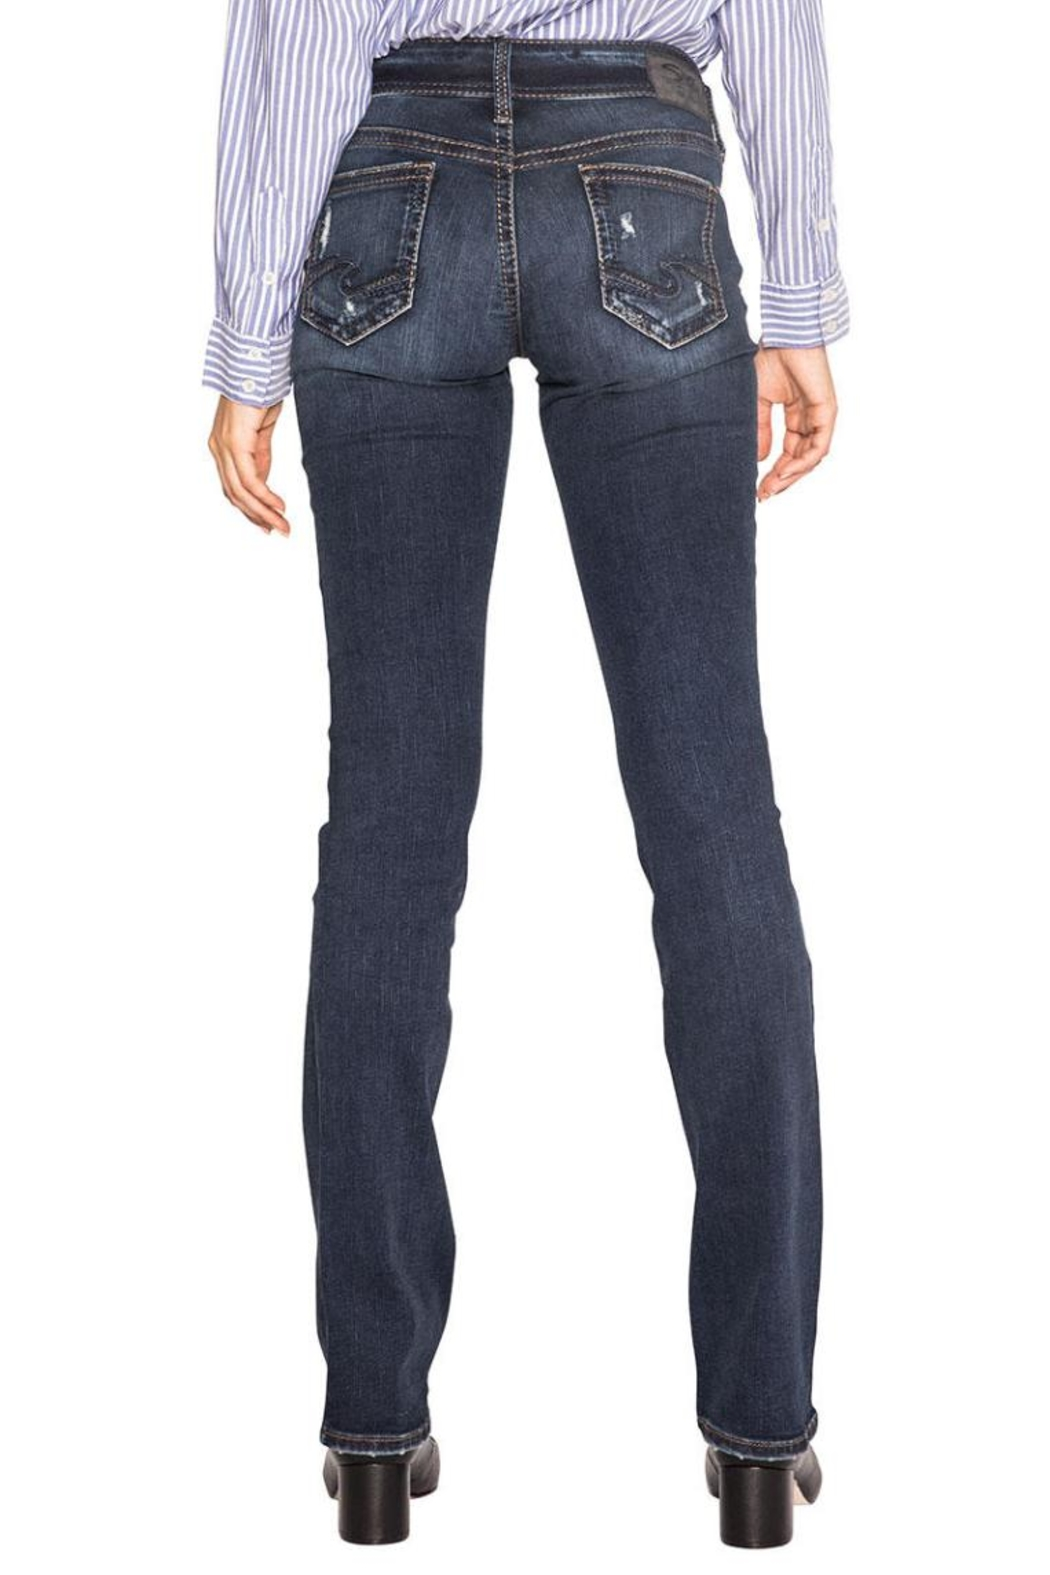 Silver Jeans Co. Suki Slim Boot - Front Full Image